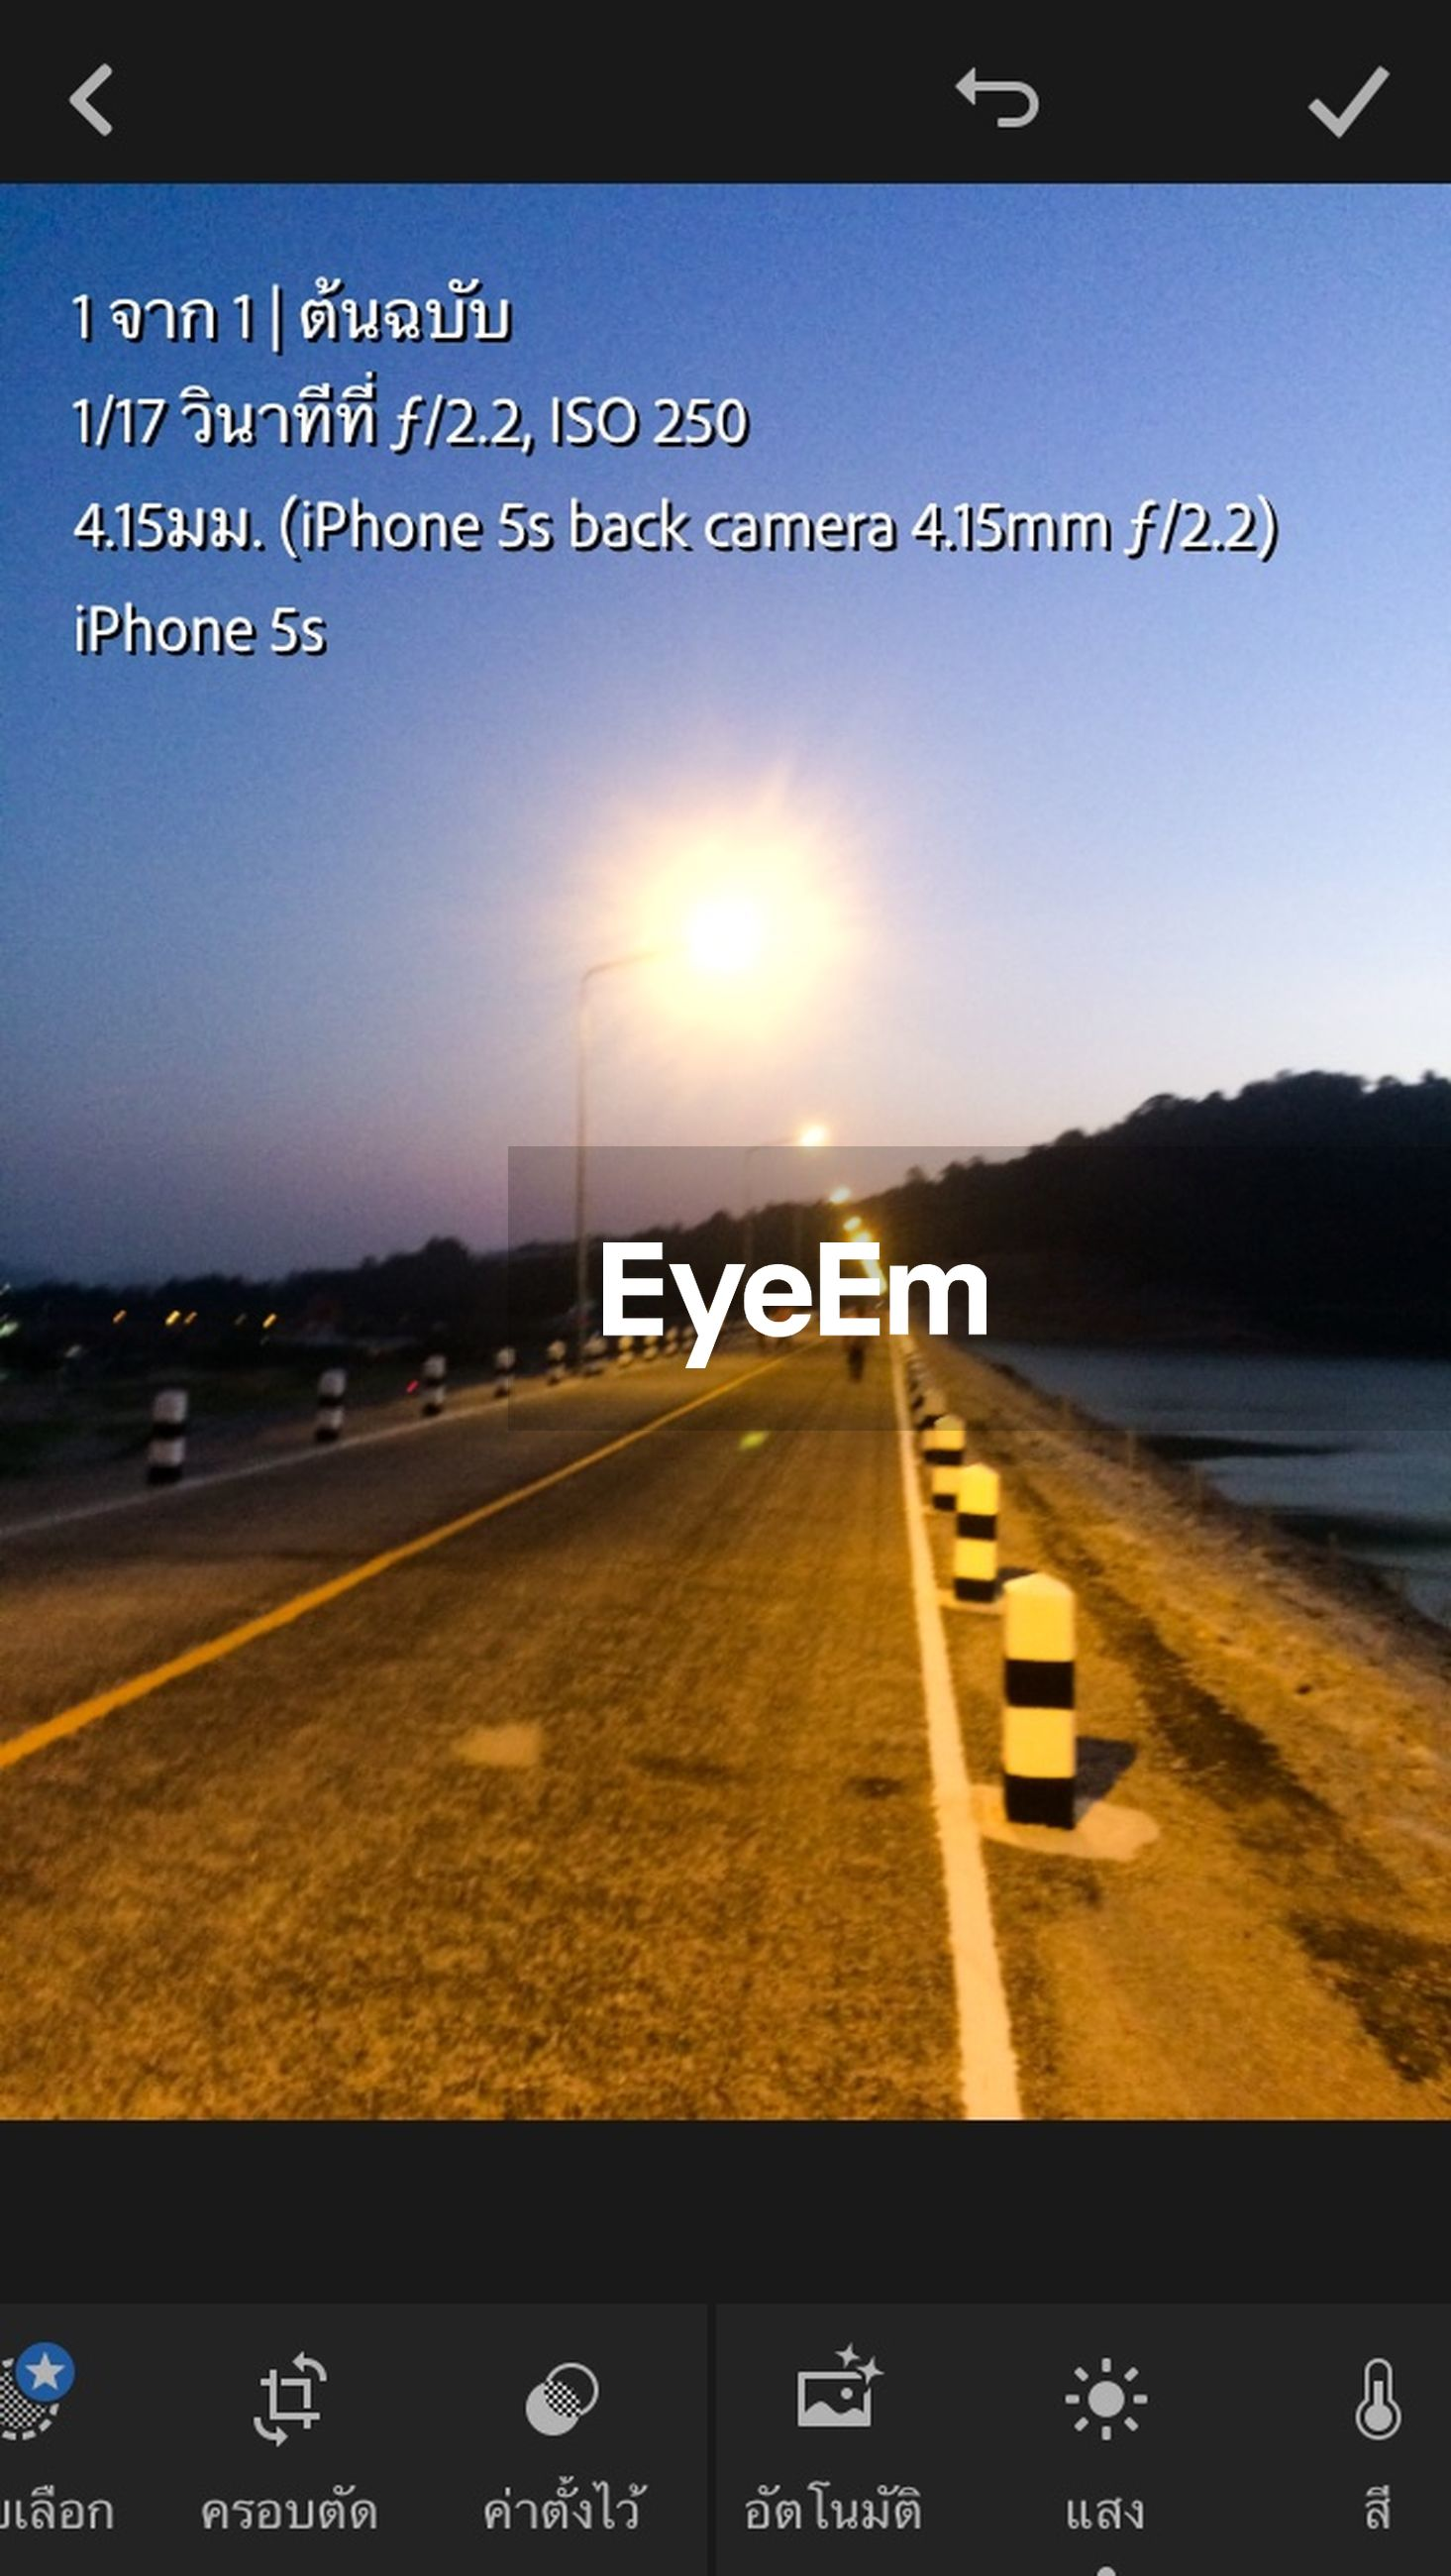 sunset, transportation, sky, text, road, the way forward, no people, scenics, yellow, outdoors, nature, water, beauty in nature, day, close-up